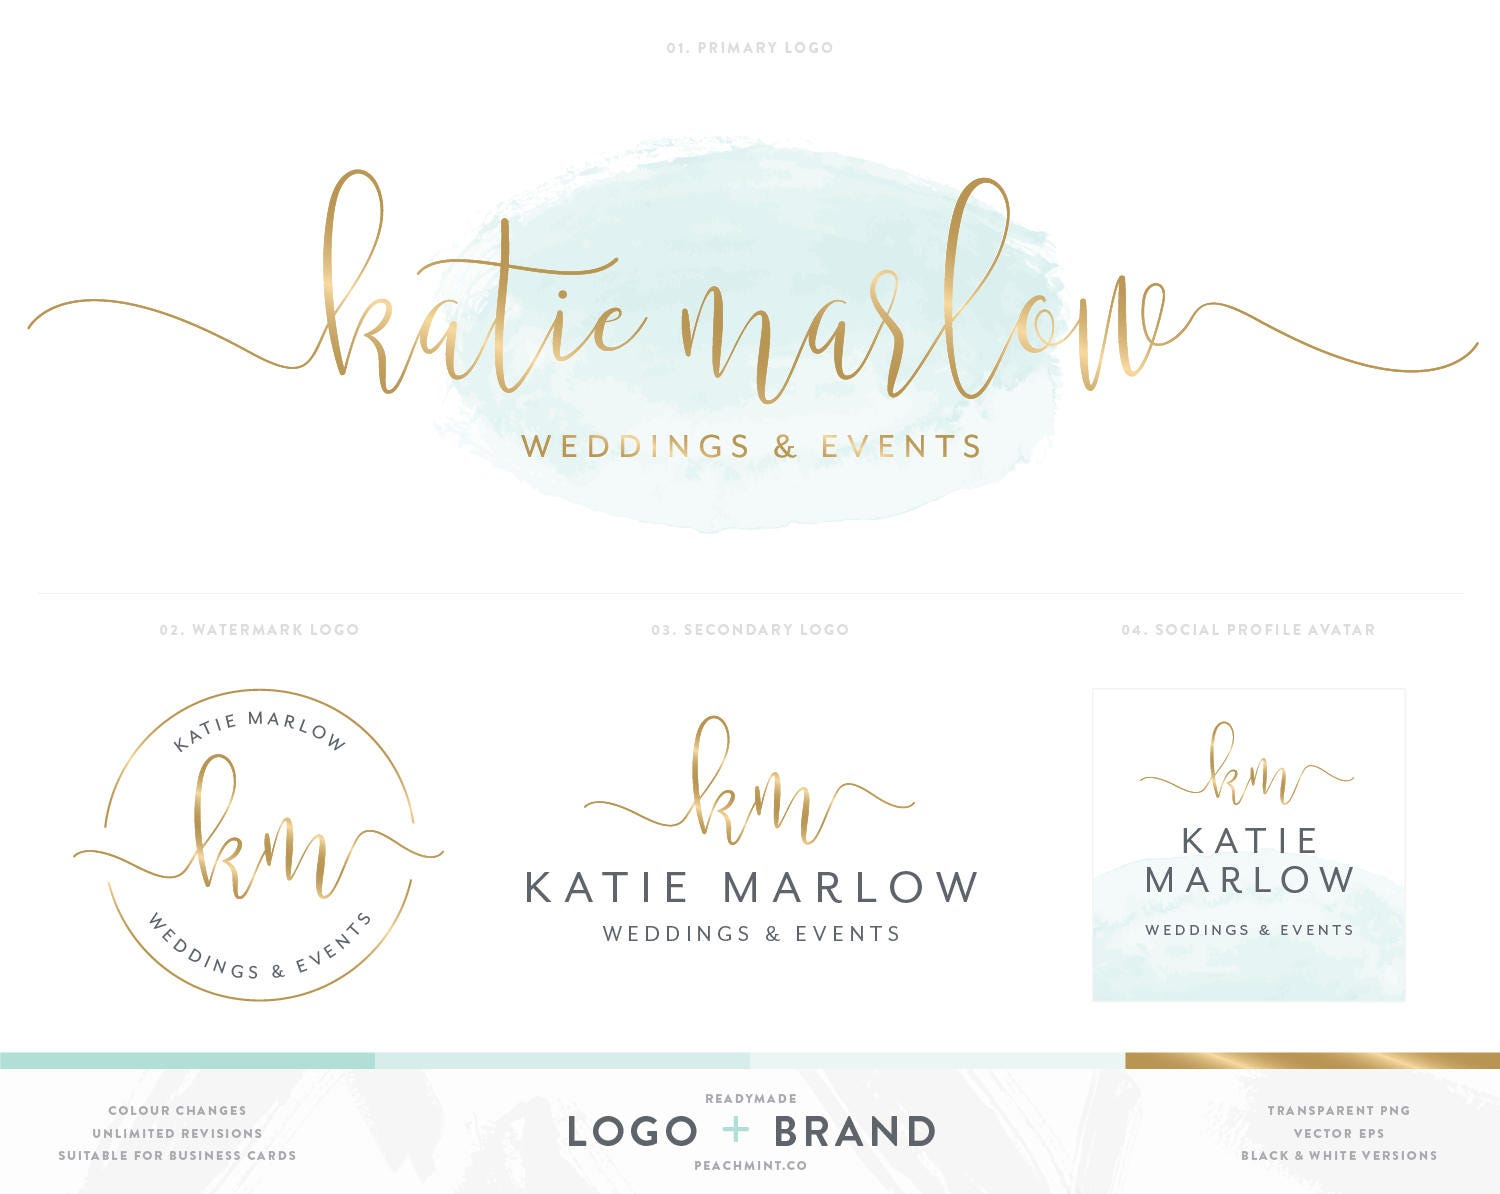 Business Cards Watermark Logo Gallery - Card Design And Card Template